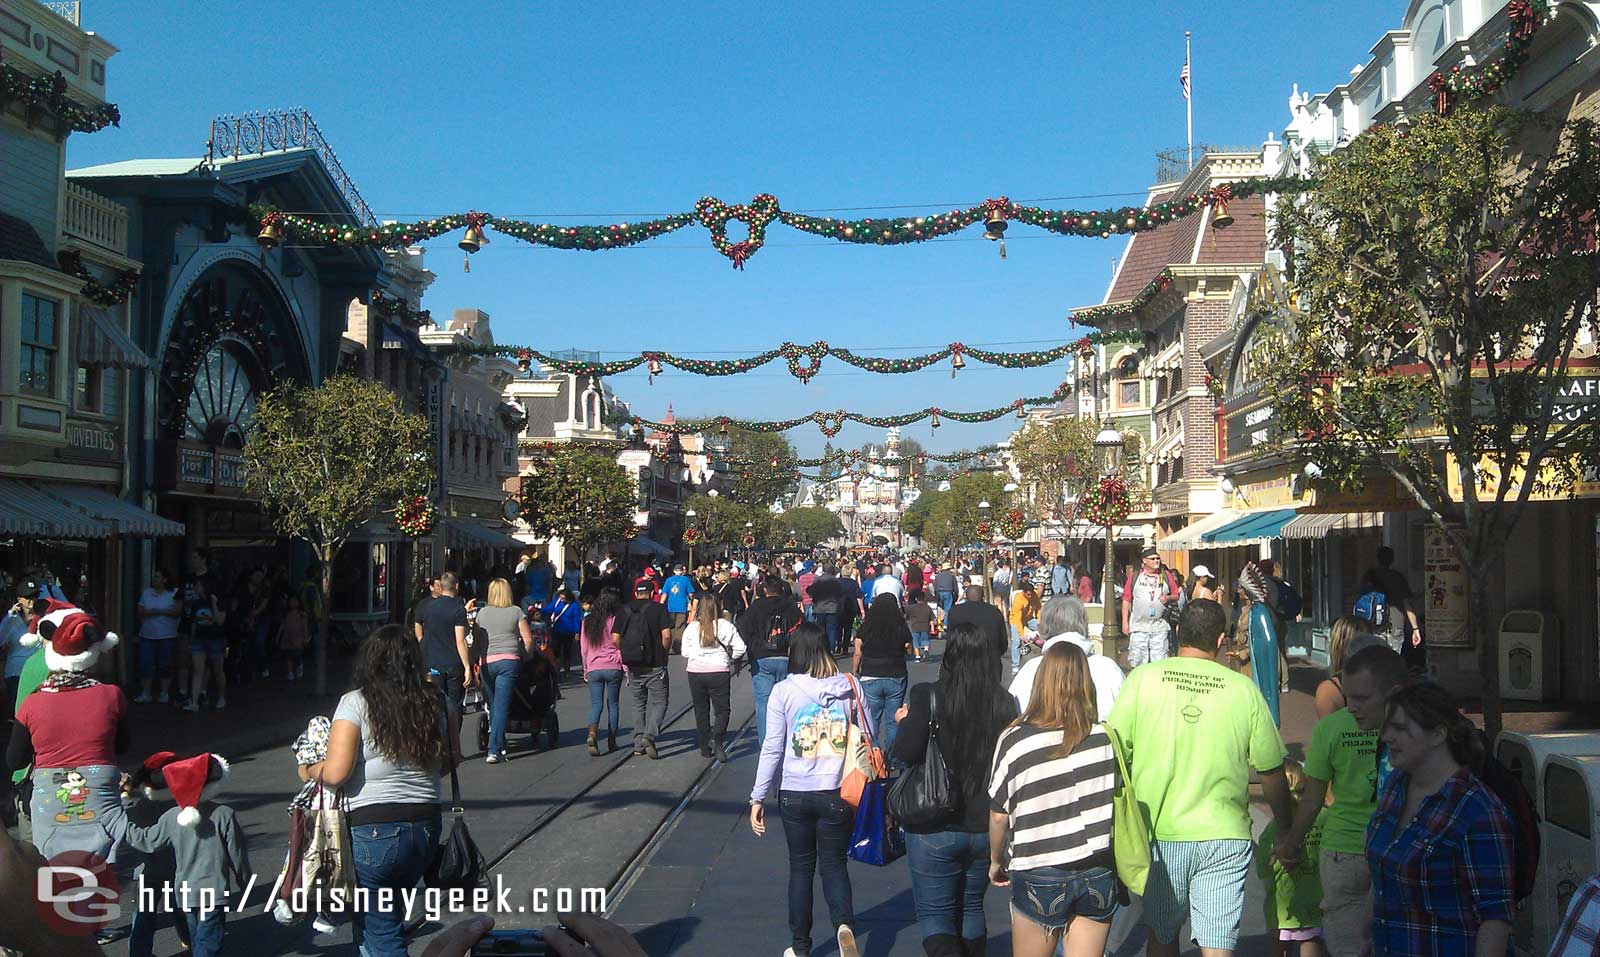 A look at Main Street USA this afternoon @ #Disneyland